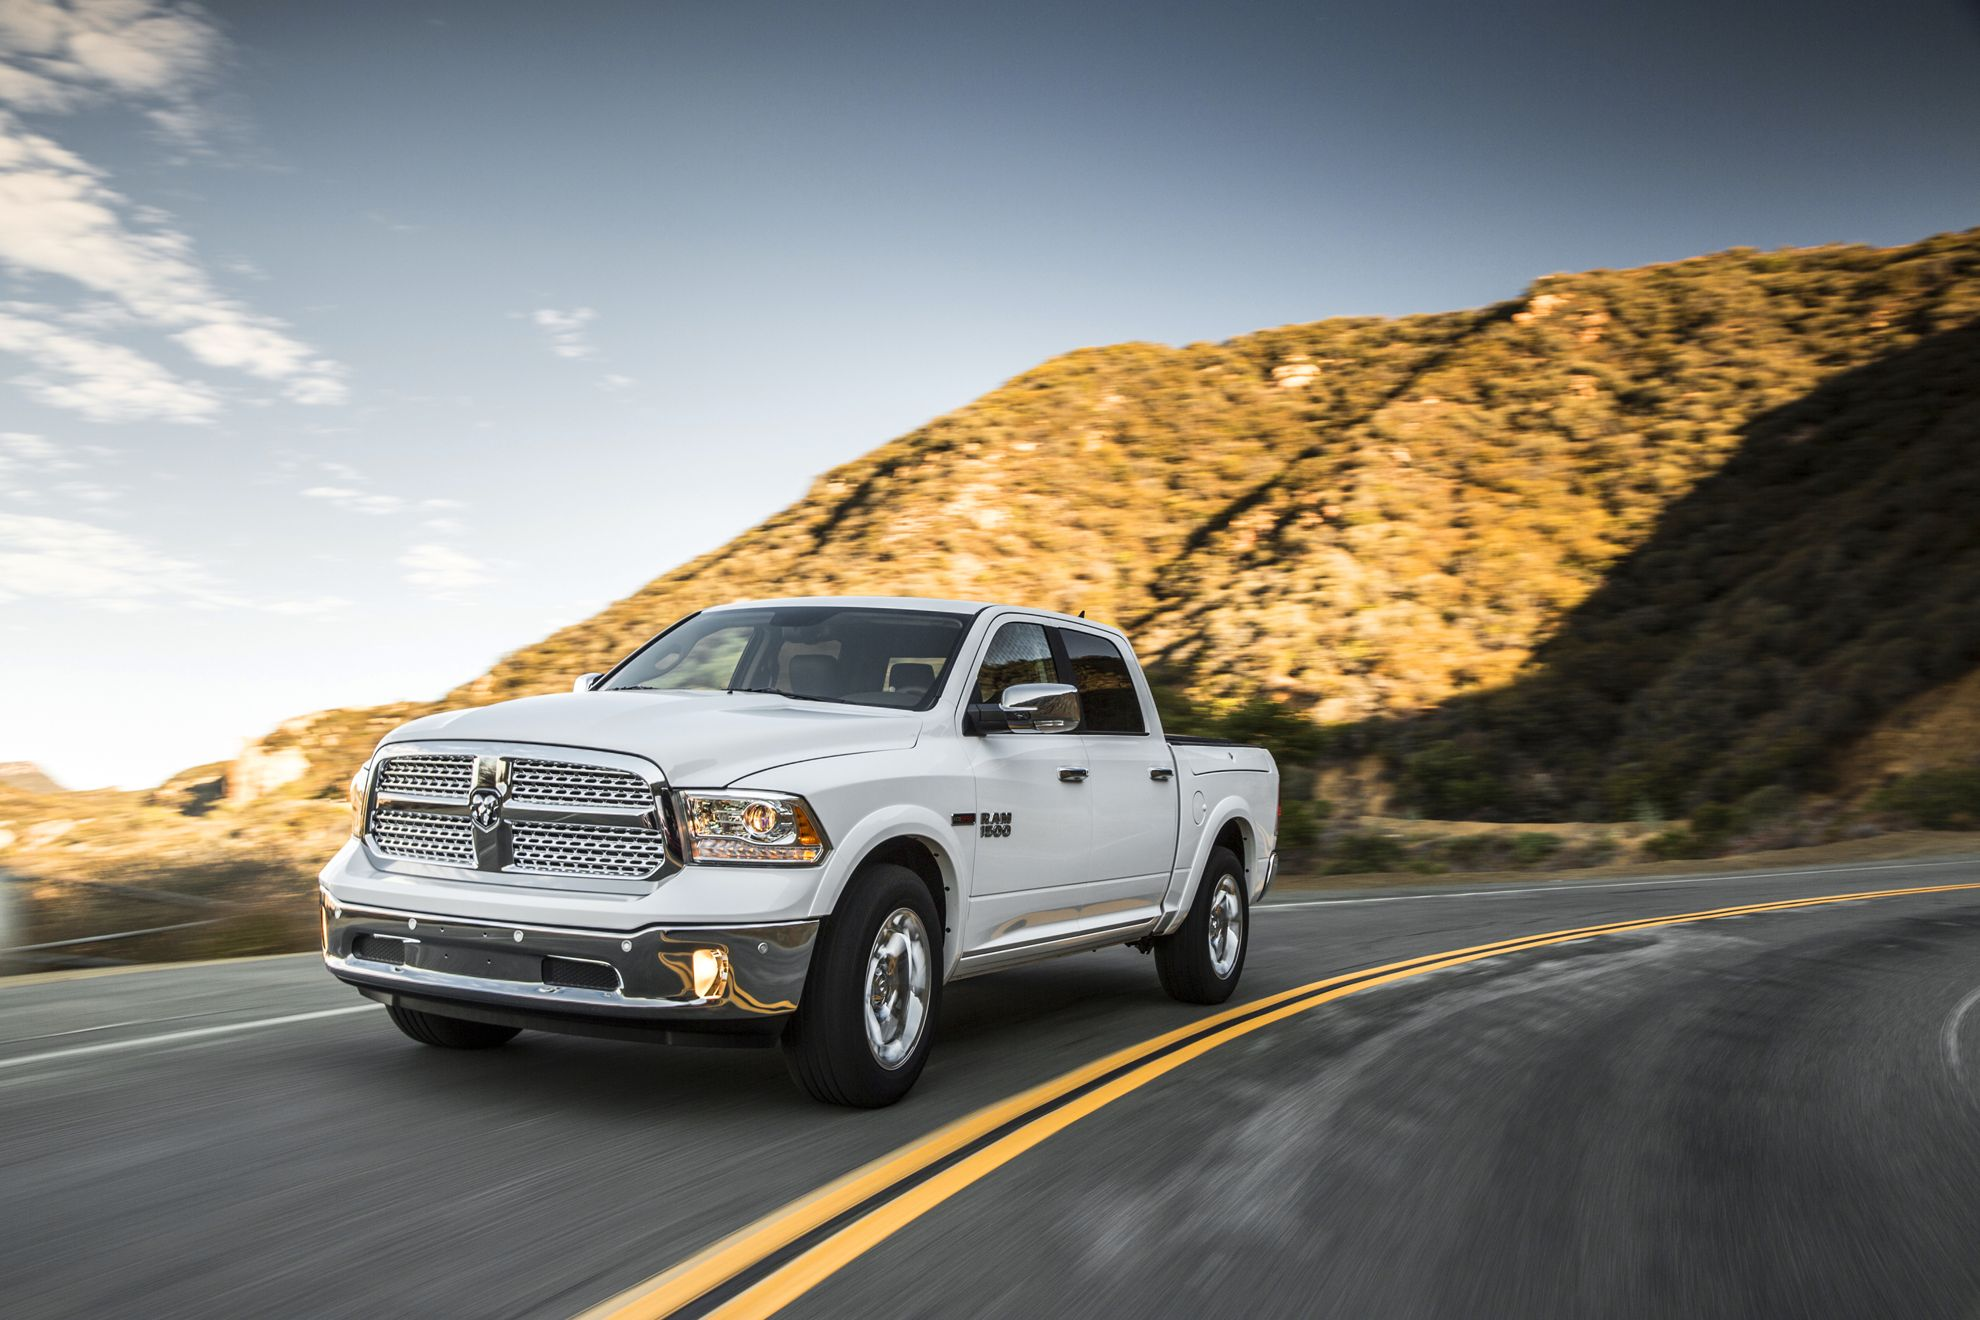 dodge ram 1500 ecodiesel sets new fuel economy benchmark of 28 mpg. Black Bedroom Furniture Sets. Home Design Ideas